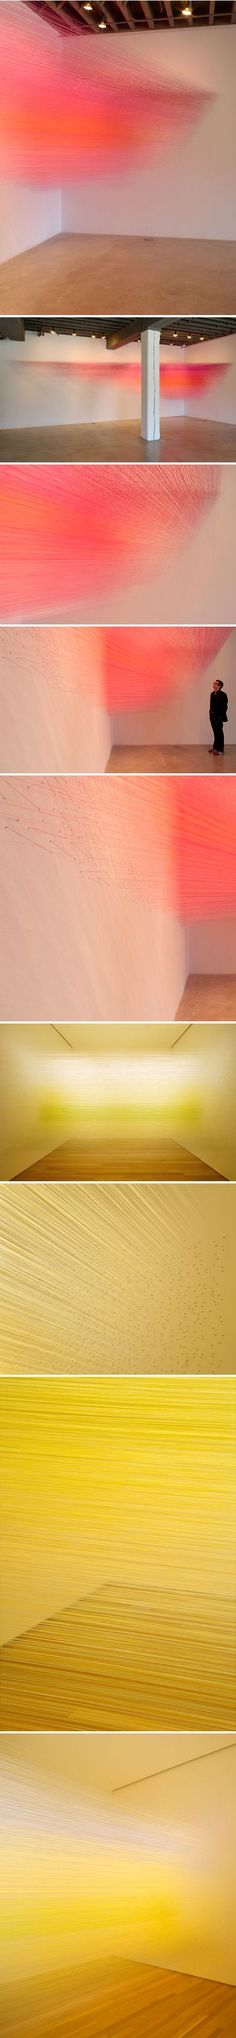 anne lindberg - thread installations - ELECTRICITY - Luminous Threads